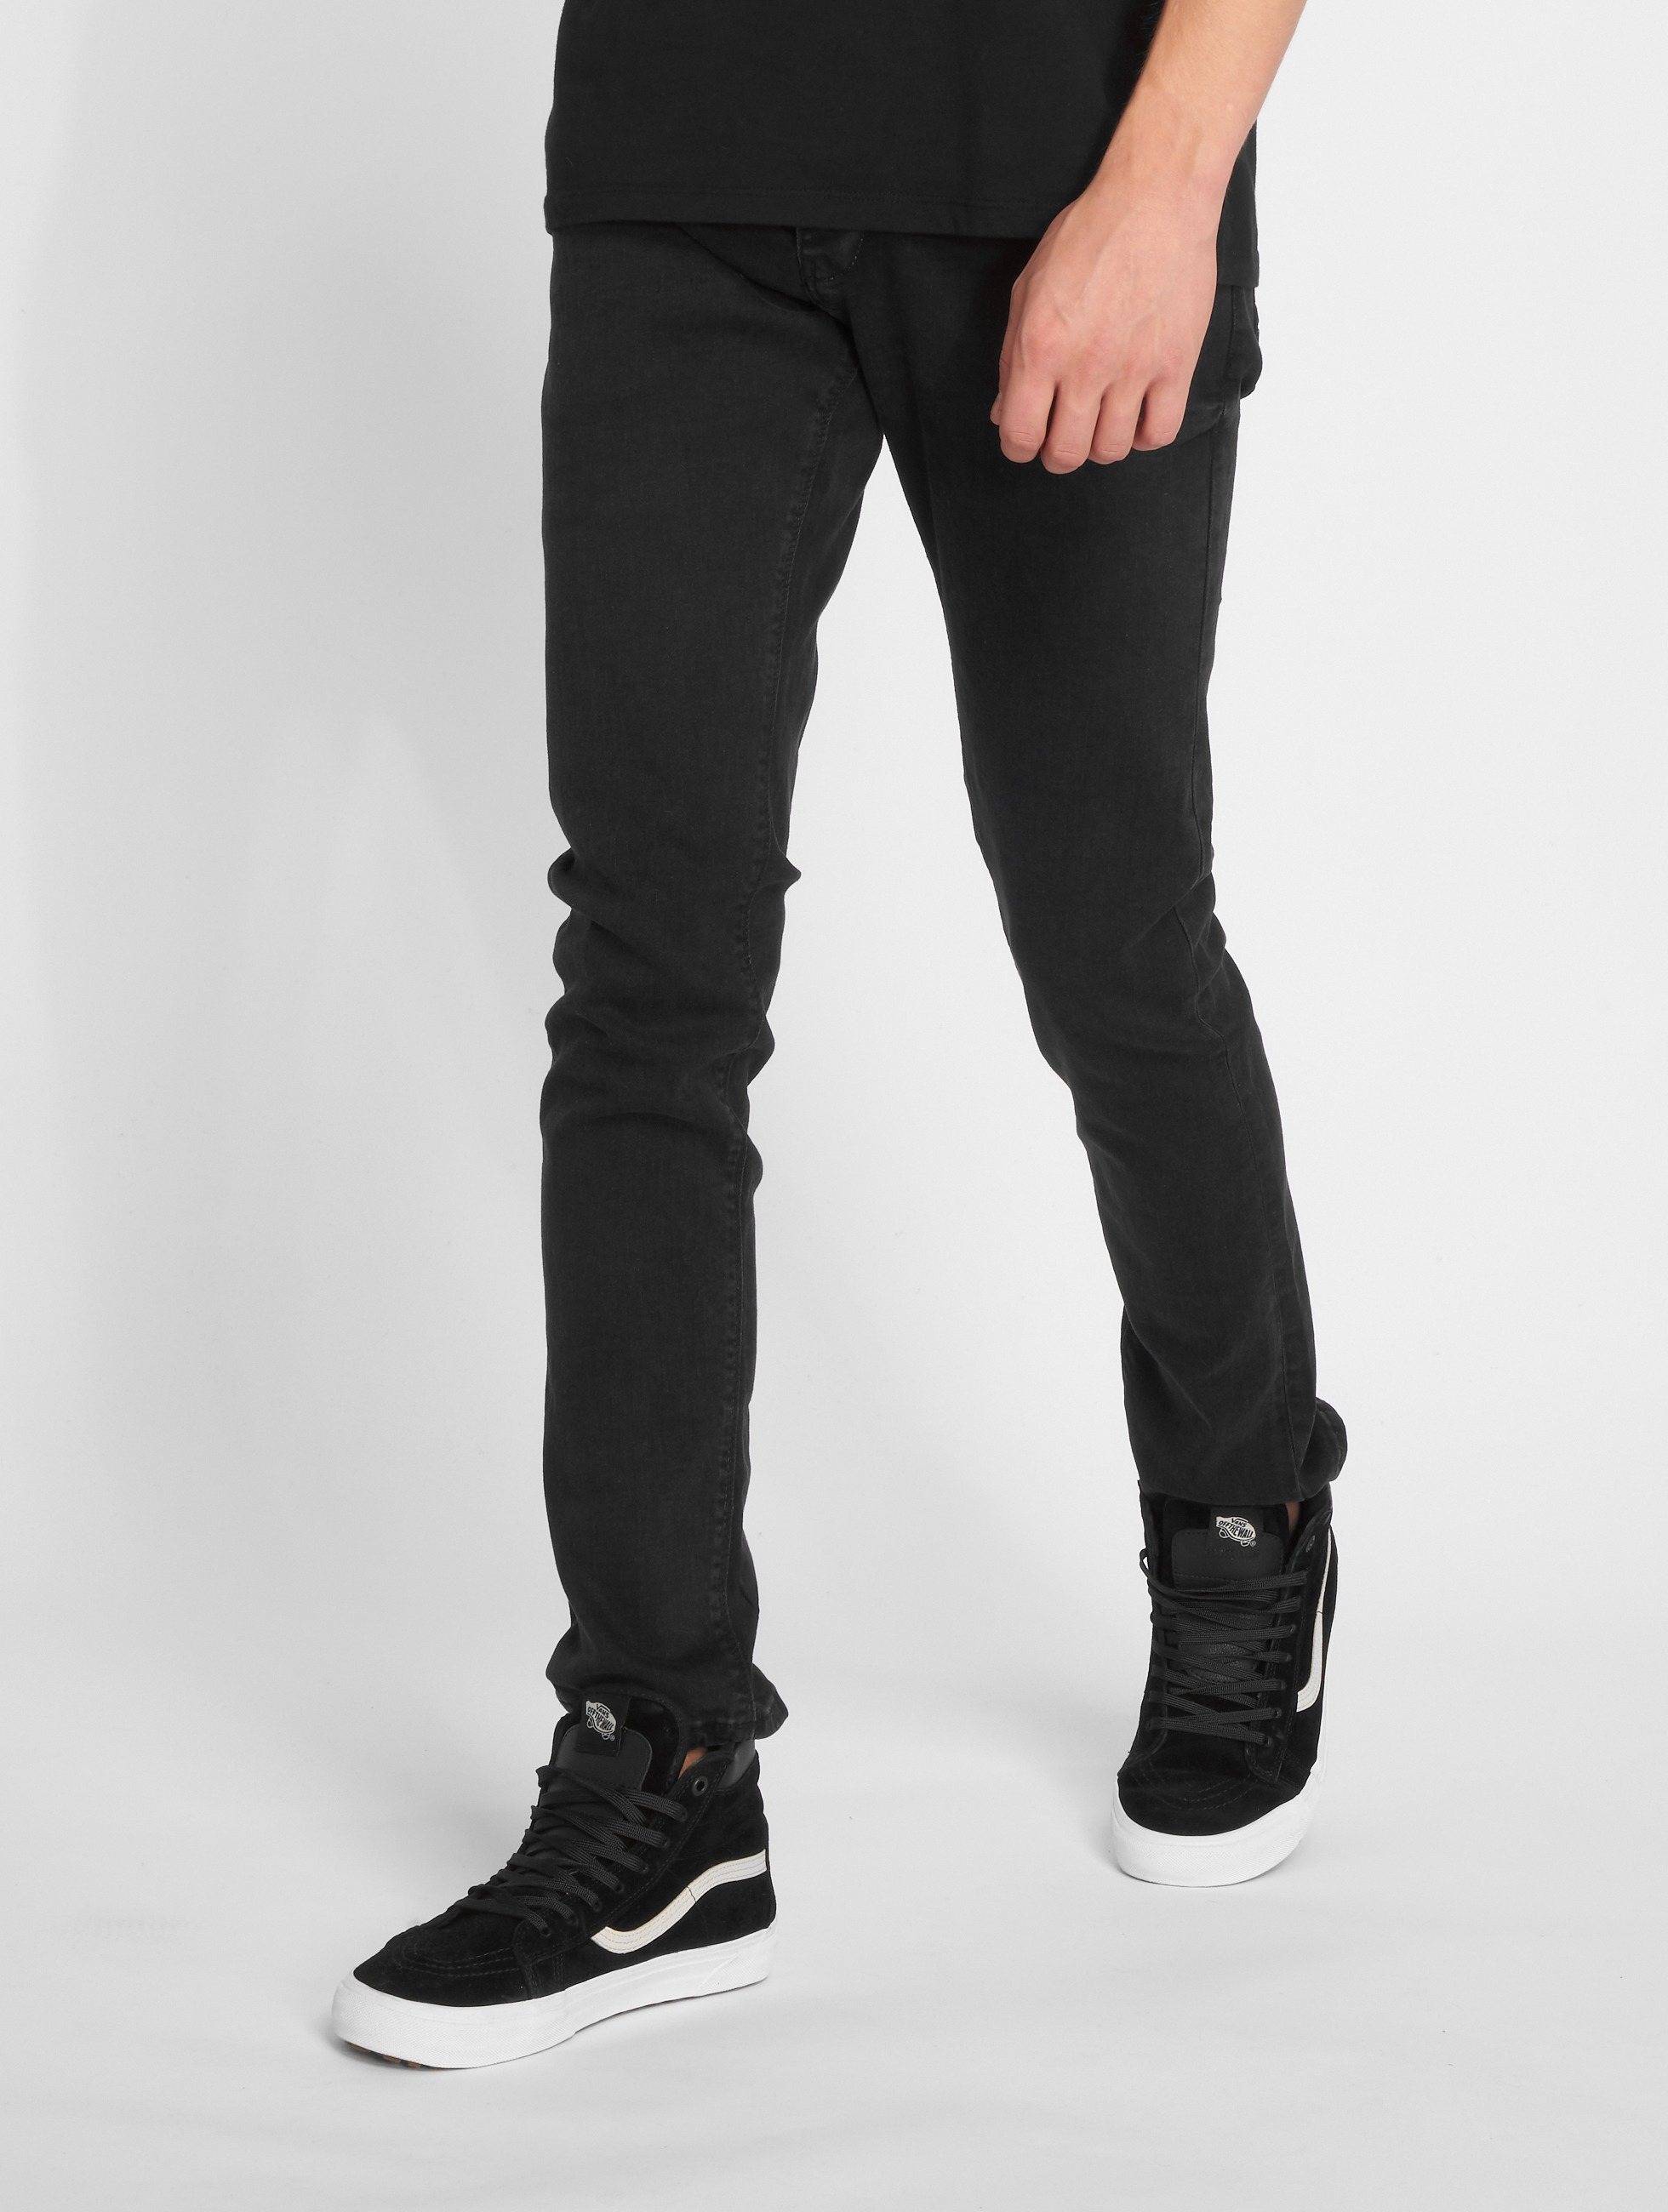 2Y / Slim Fit Jeans Gio in black W 34